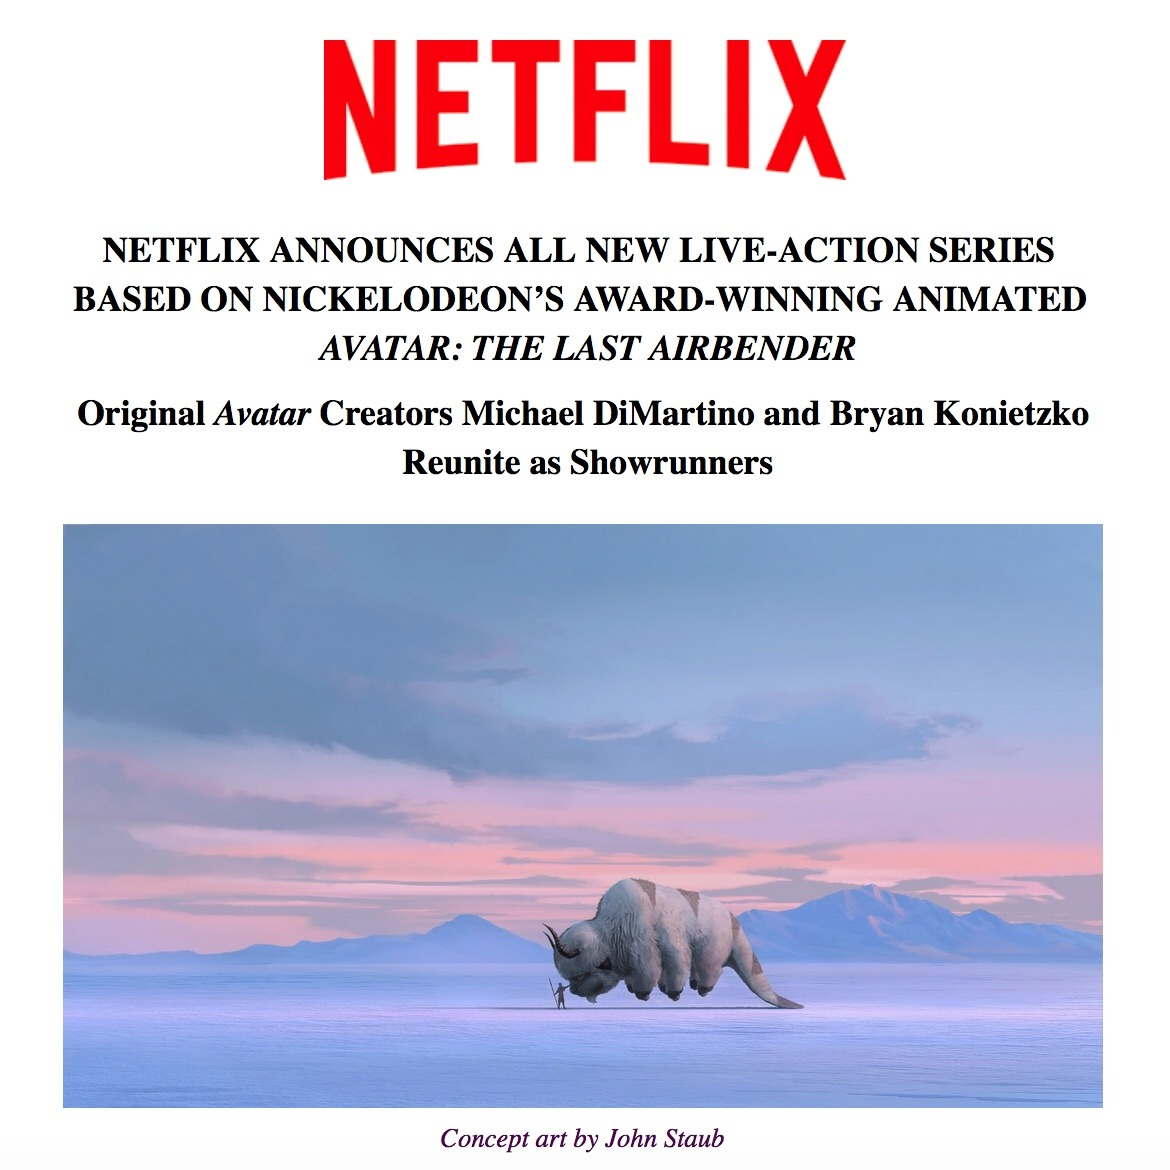 Live-action Avatar: The Last Airbender series is coming to